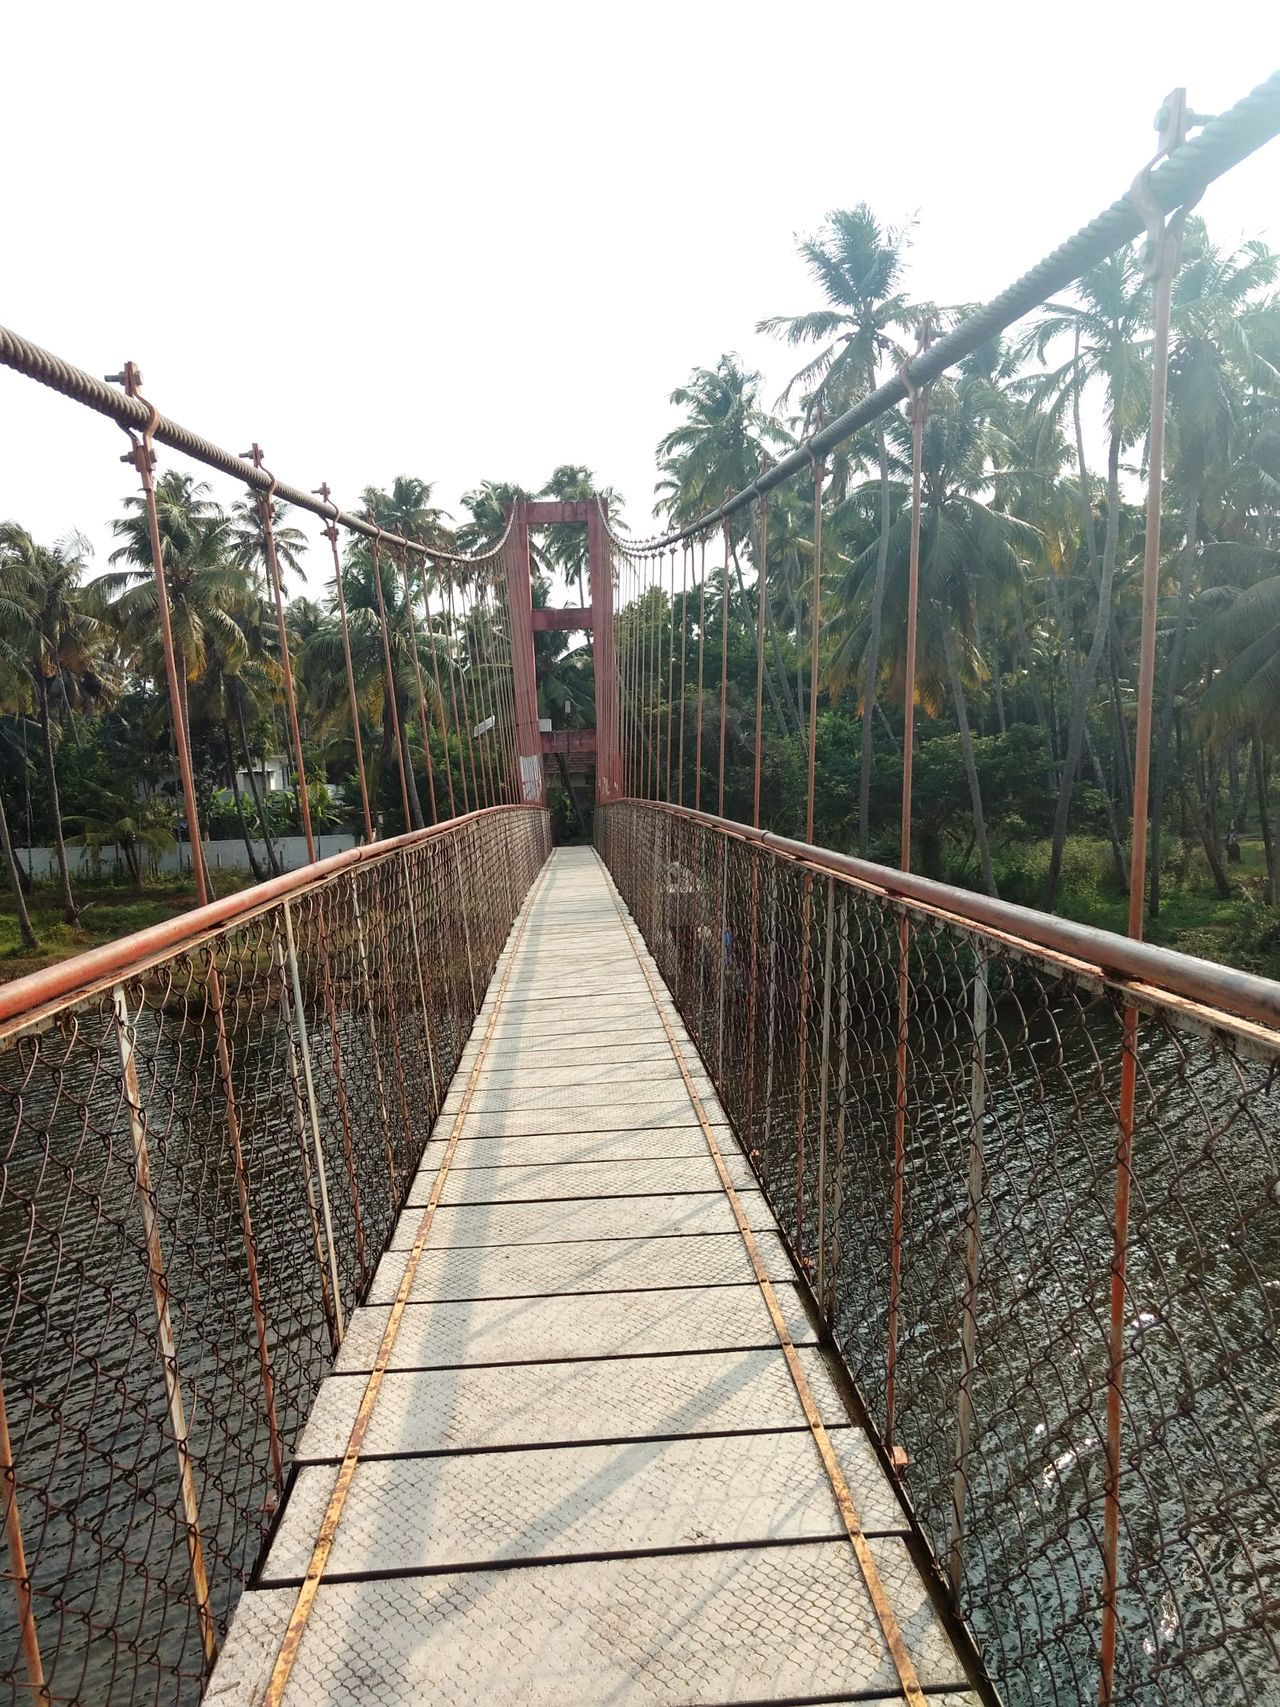 Suspension Bridge Water River Greenarrow Nature Daylight Planks Happiness Trees Tranquility Picturisque No People Outdoors Live For The Story The Great Outdoors - 2017 EyeEm Awards The Architect - 2017 EyeEm Awards EyeEmNewHere BYOPaper!